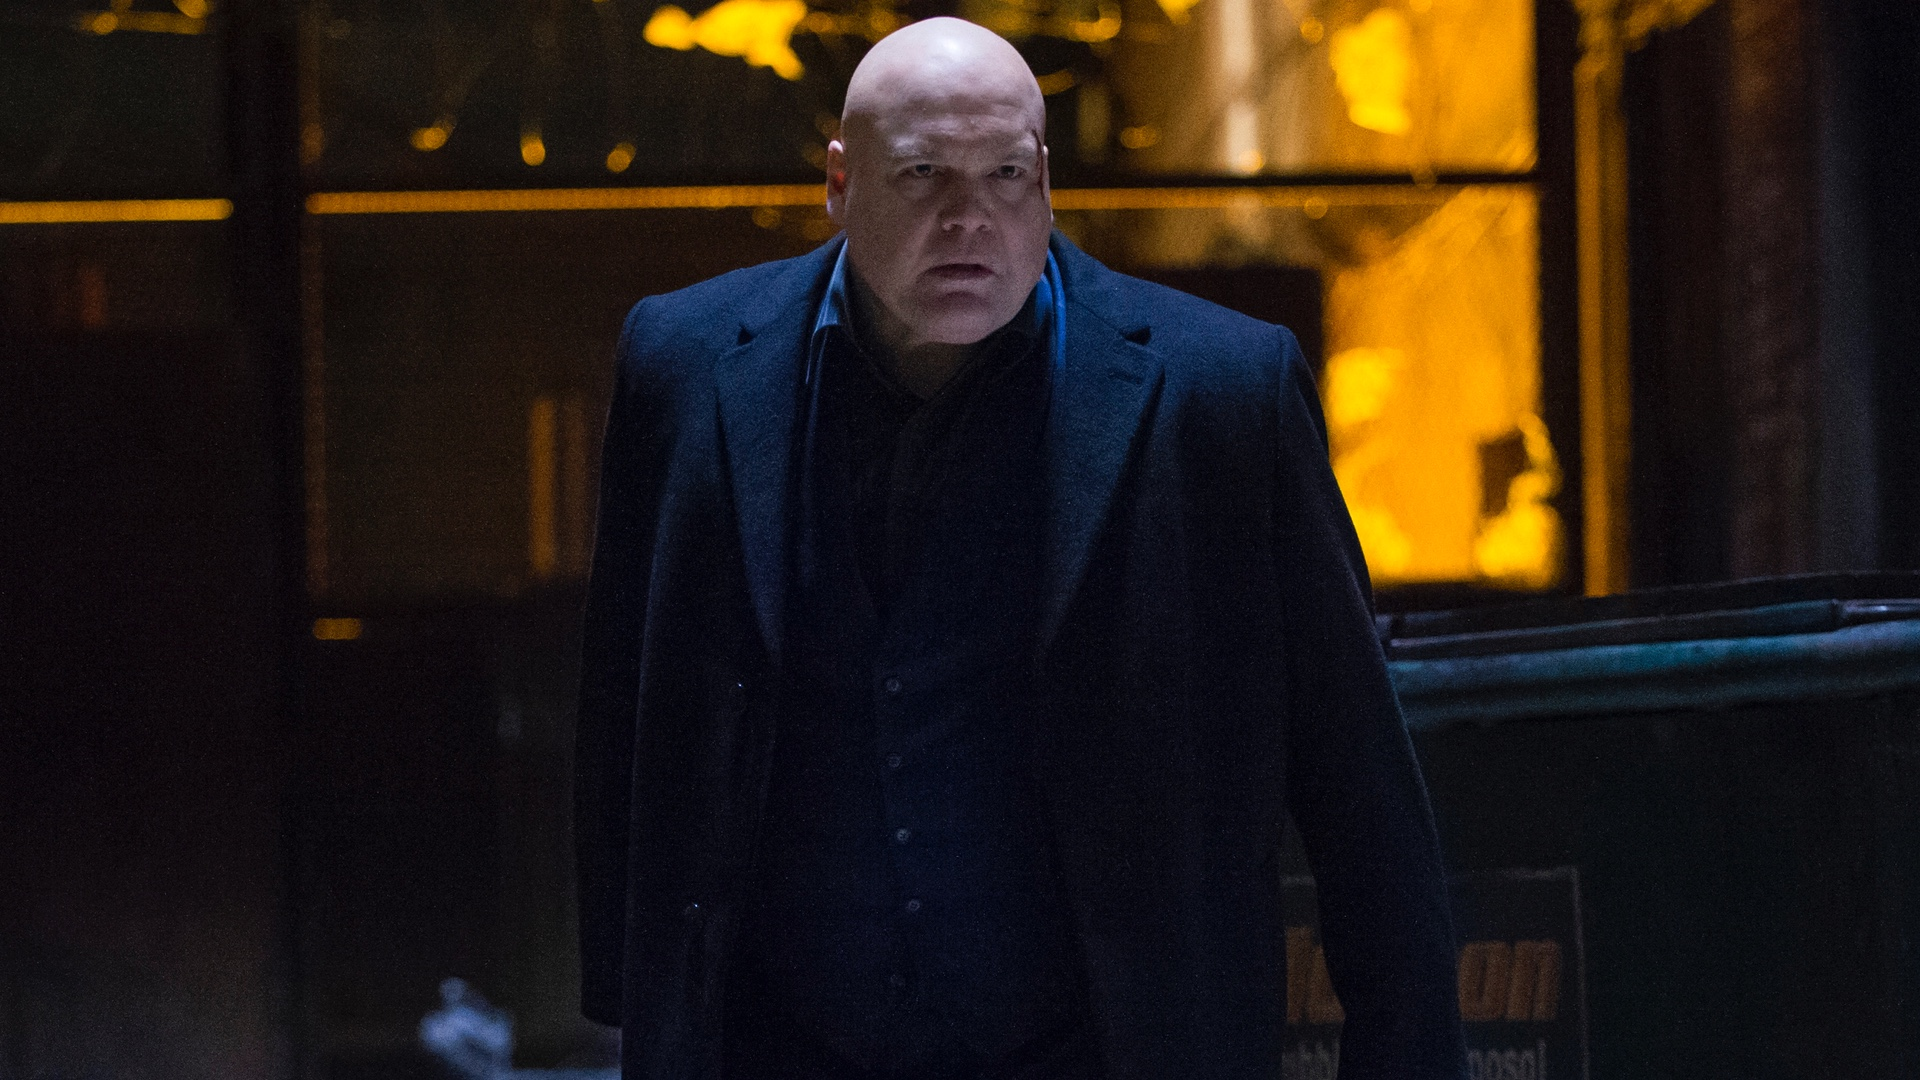 vincent d'onofrio will be back as kingpin in daredevil season 3